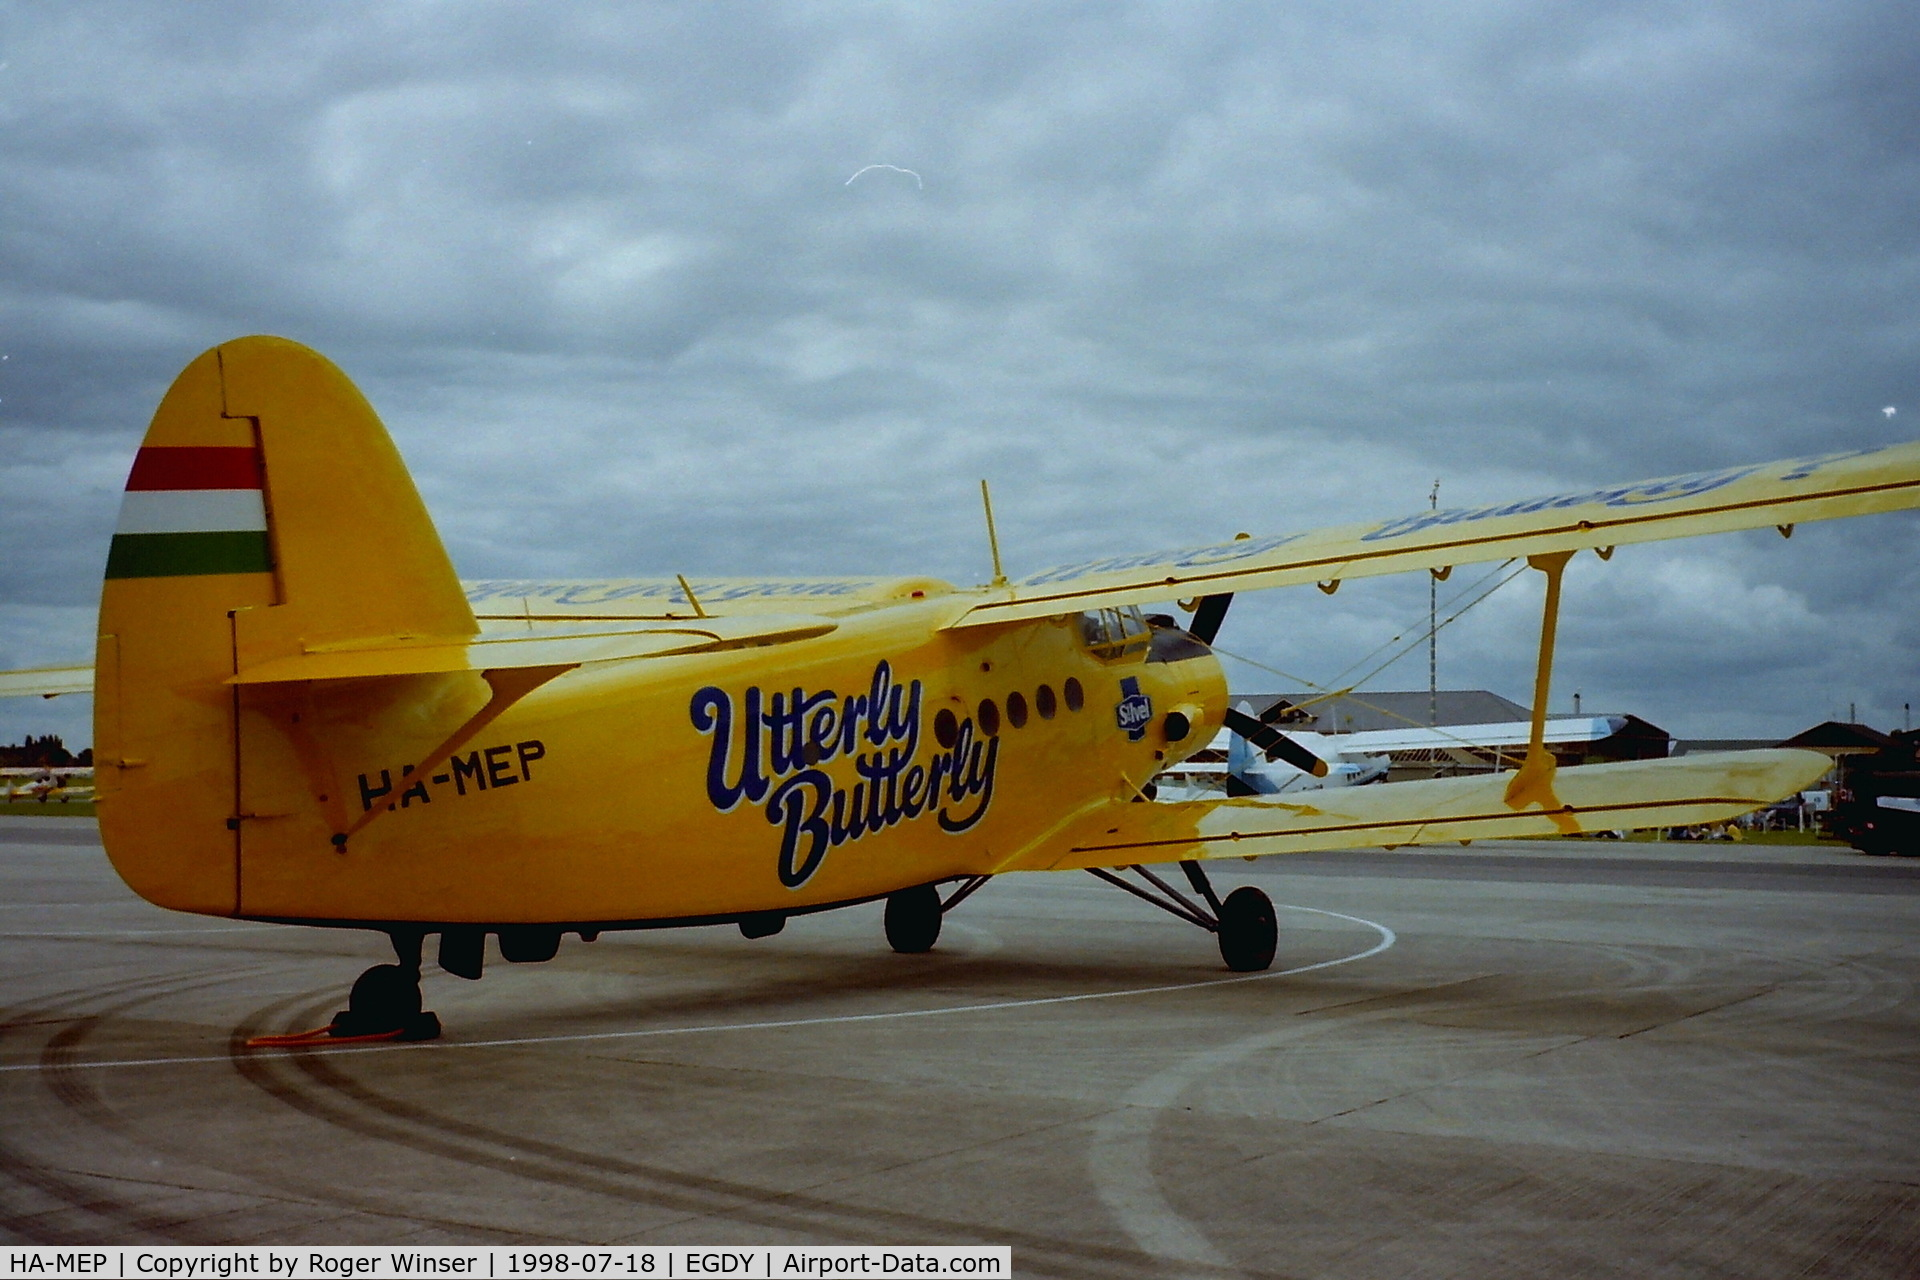 HA-MEP, 1980 Antonov An-2R C/N 1G190-25, St Ivel Utterly Buttery display aircraft at RNAS Yeovilton Air Day in 1998.